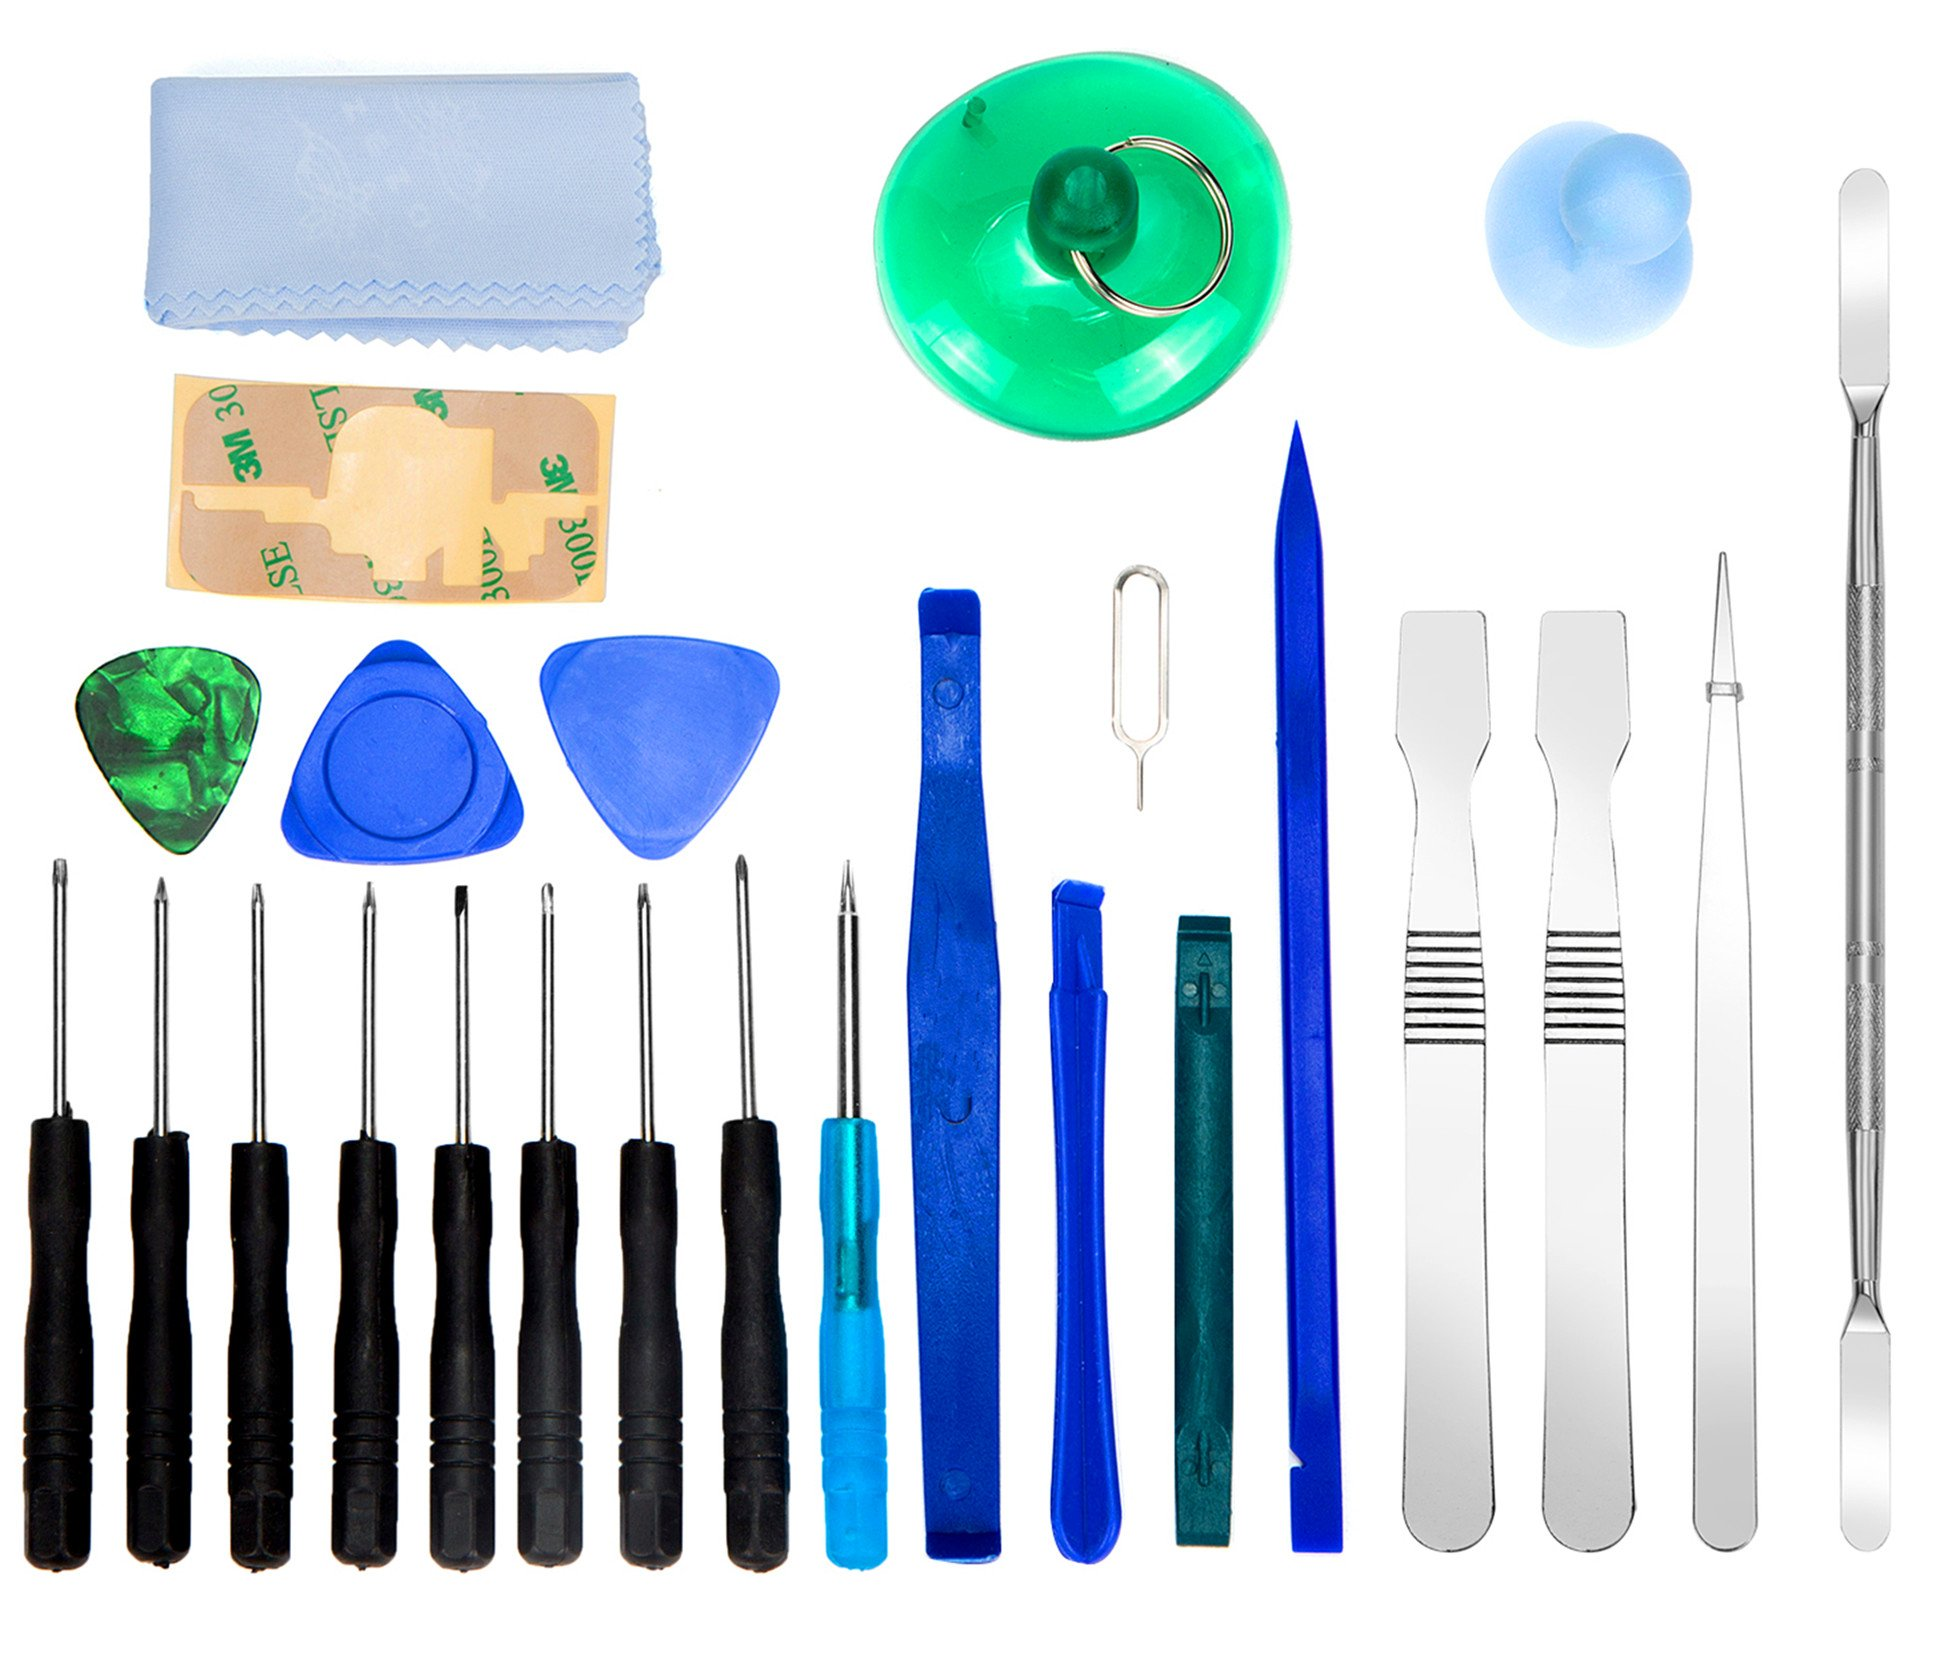 MOTINE 25 in 1 Universal Screen Removal Opening Repair Tool Kit Pry Tools Kit and Disassemble Screwdriver Set for Iphone/ Ipad/Ipod/Other Cell Phones and Devices